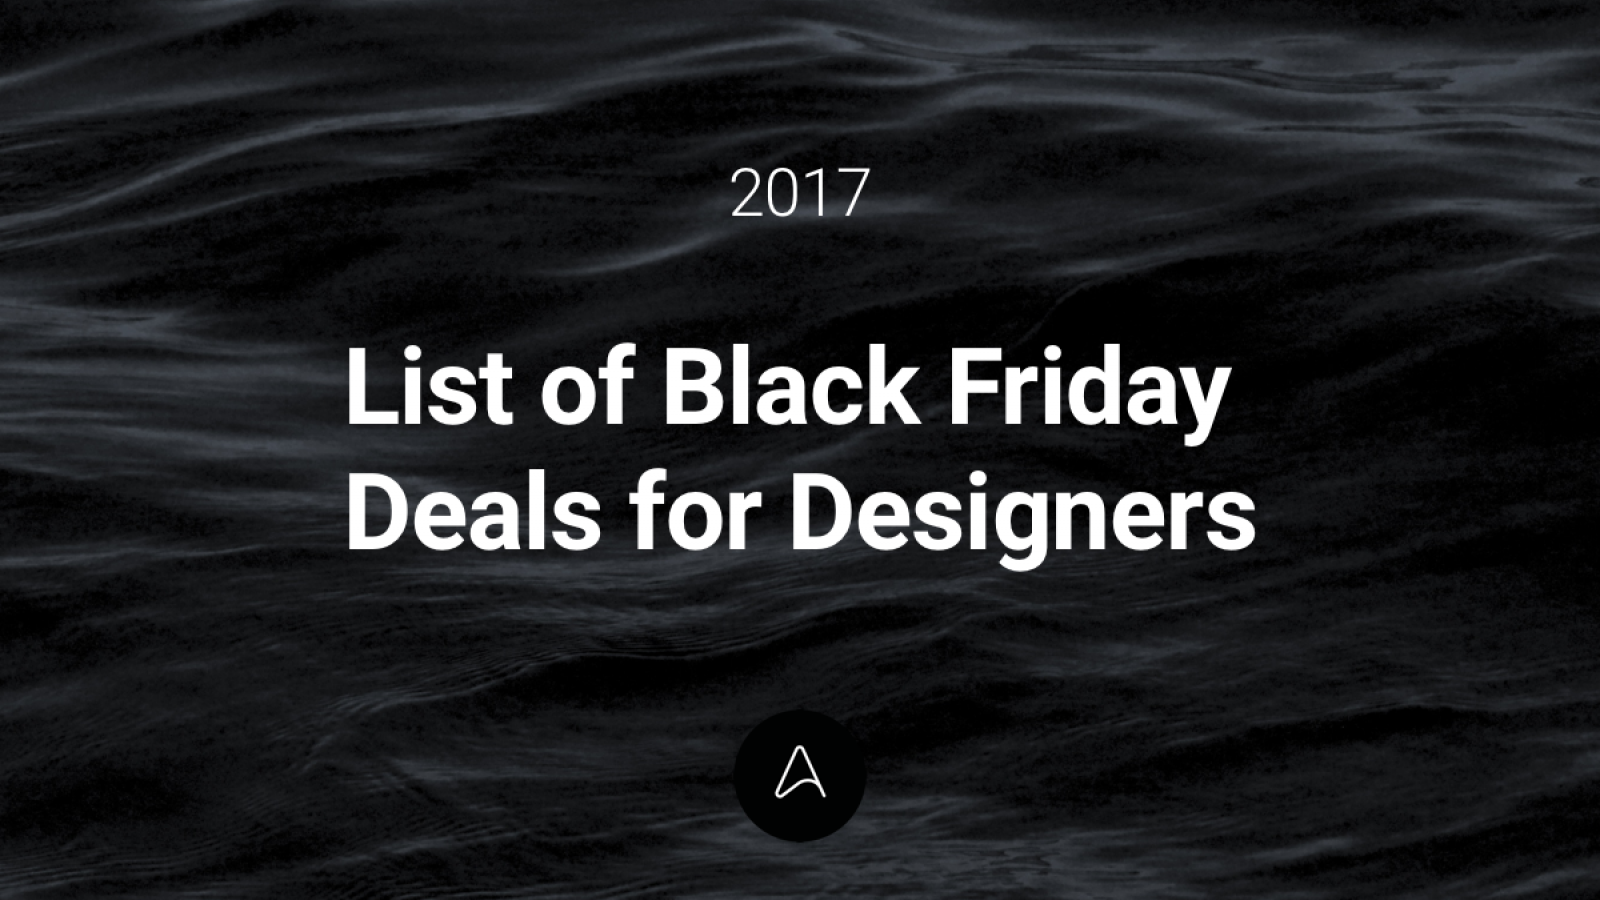 List of Black Friday Deals for Designers (2017)